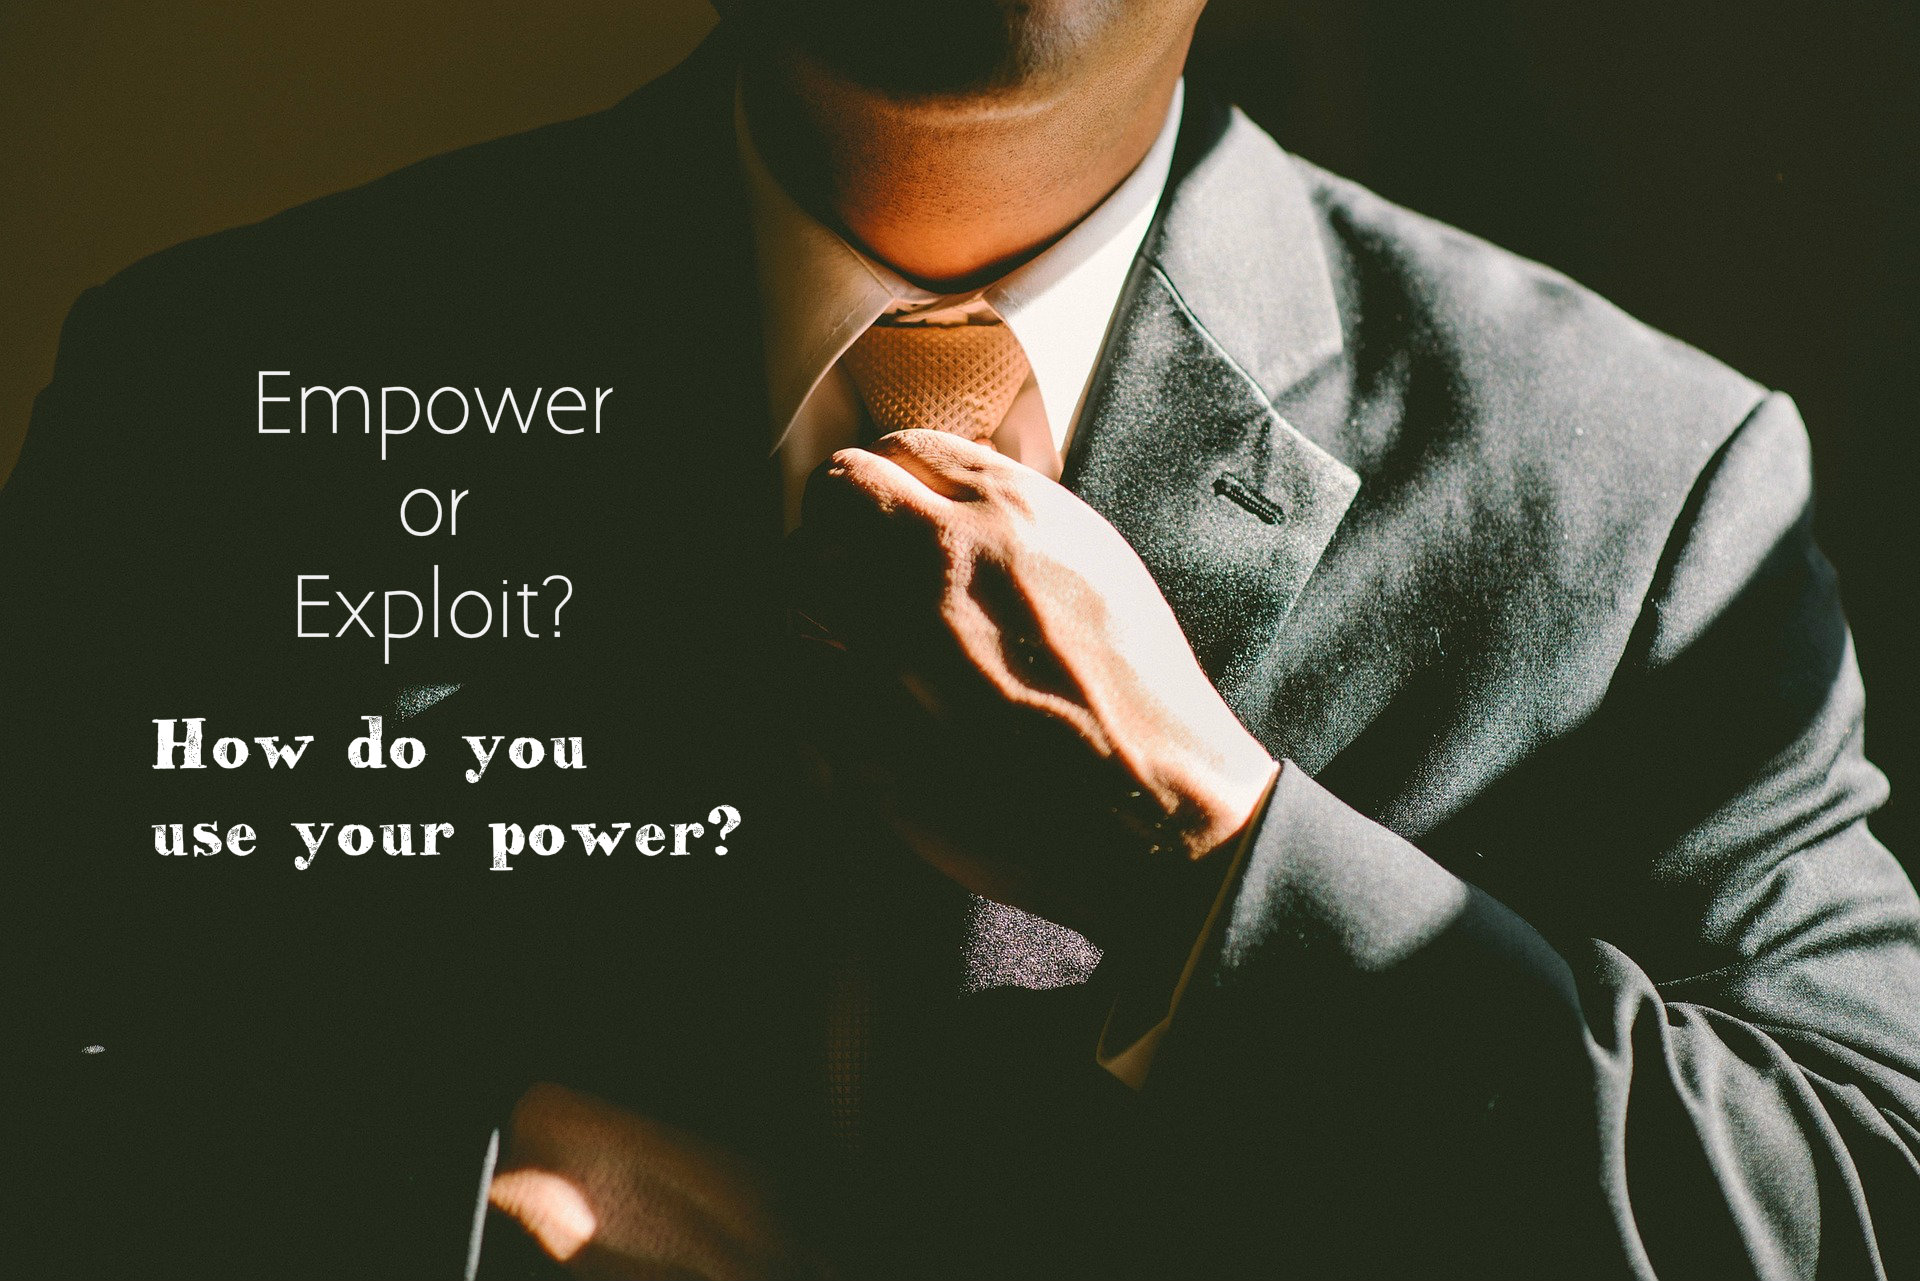 Empower or exploit? How do you use your power?